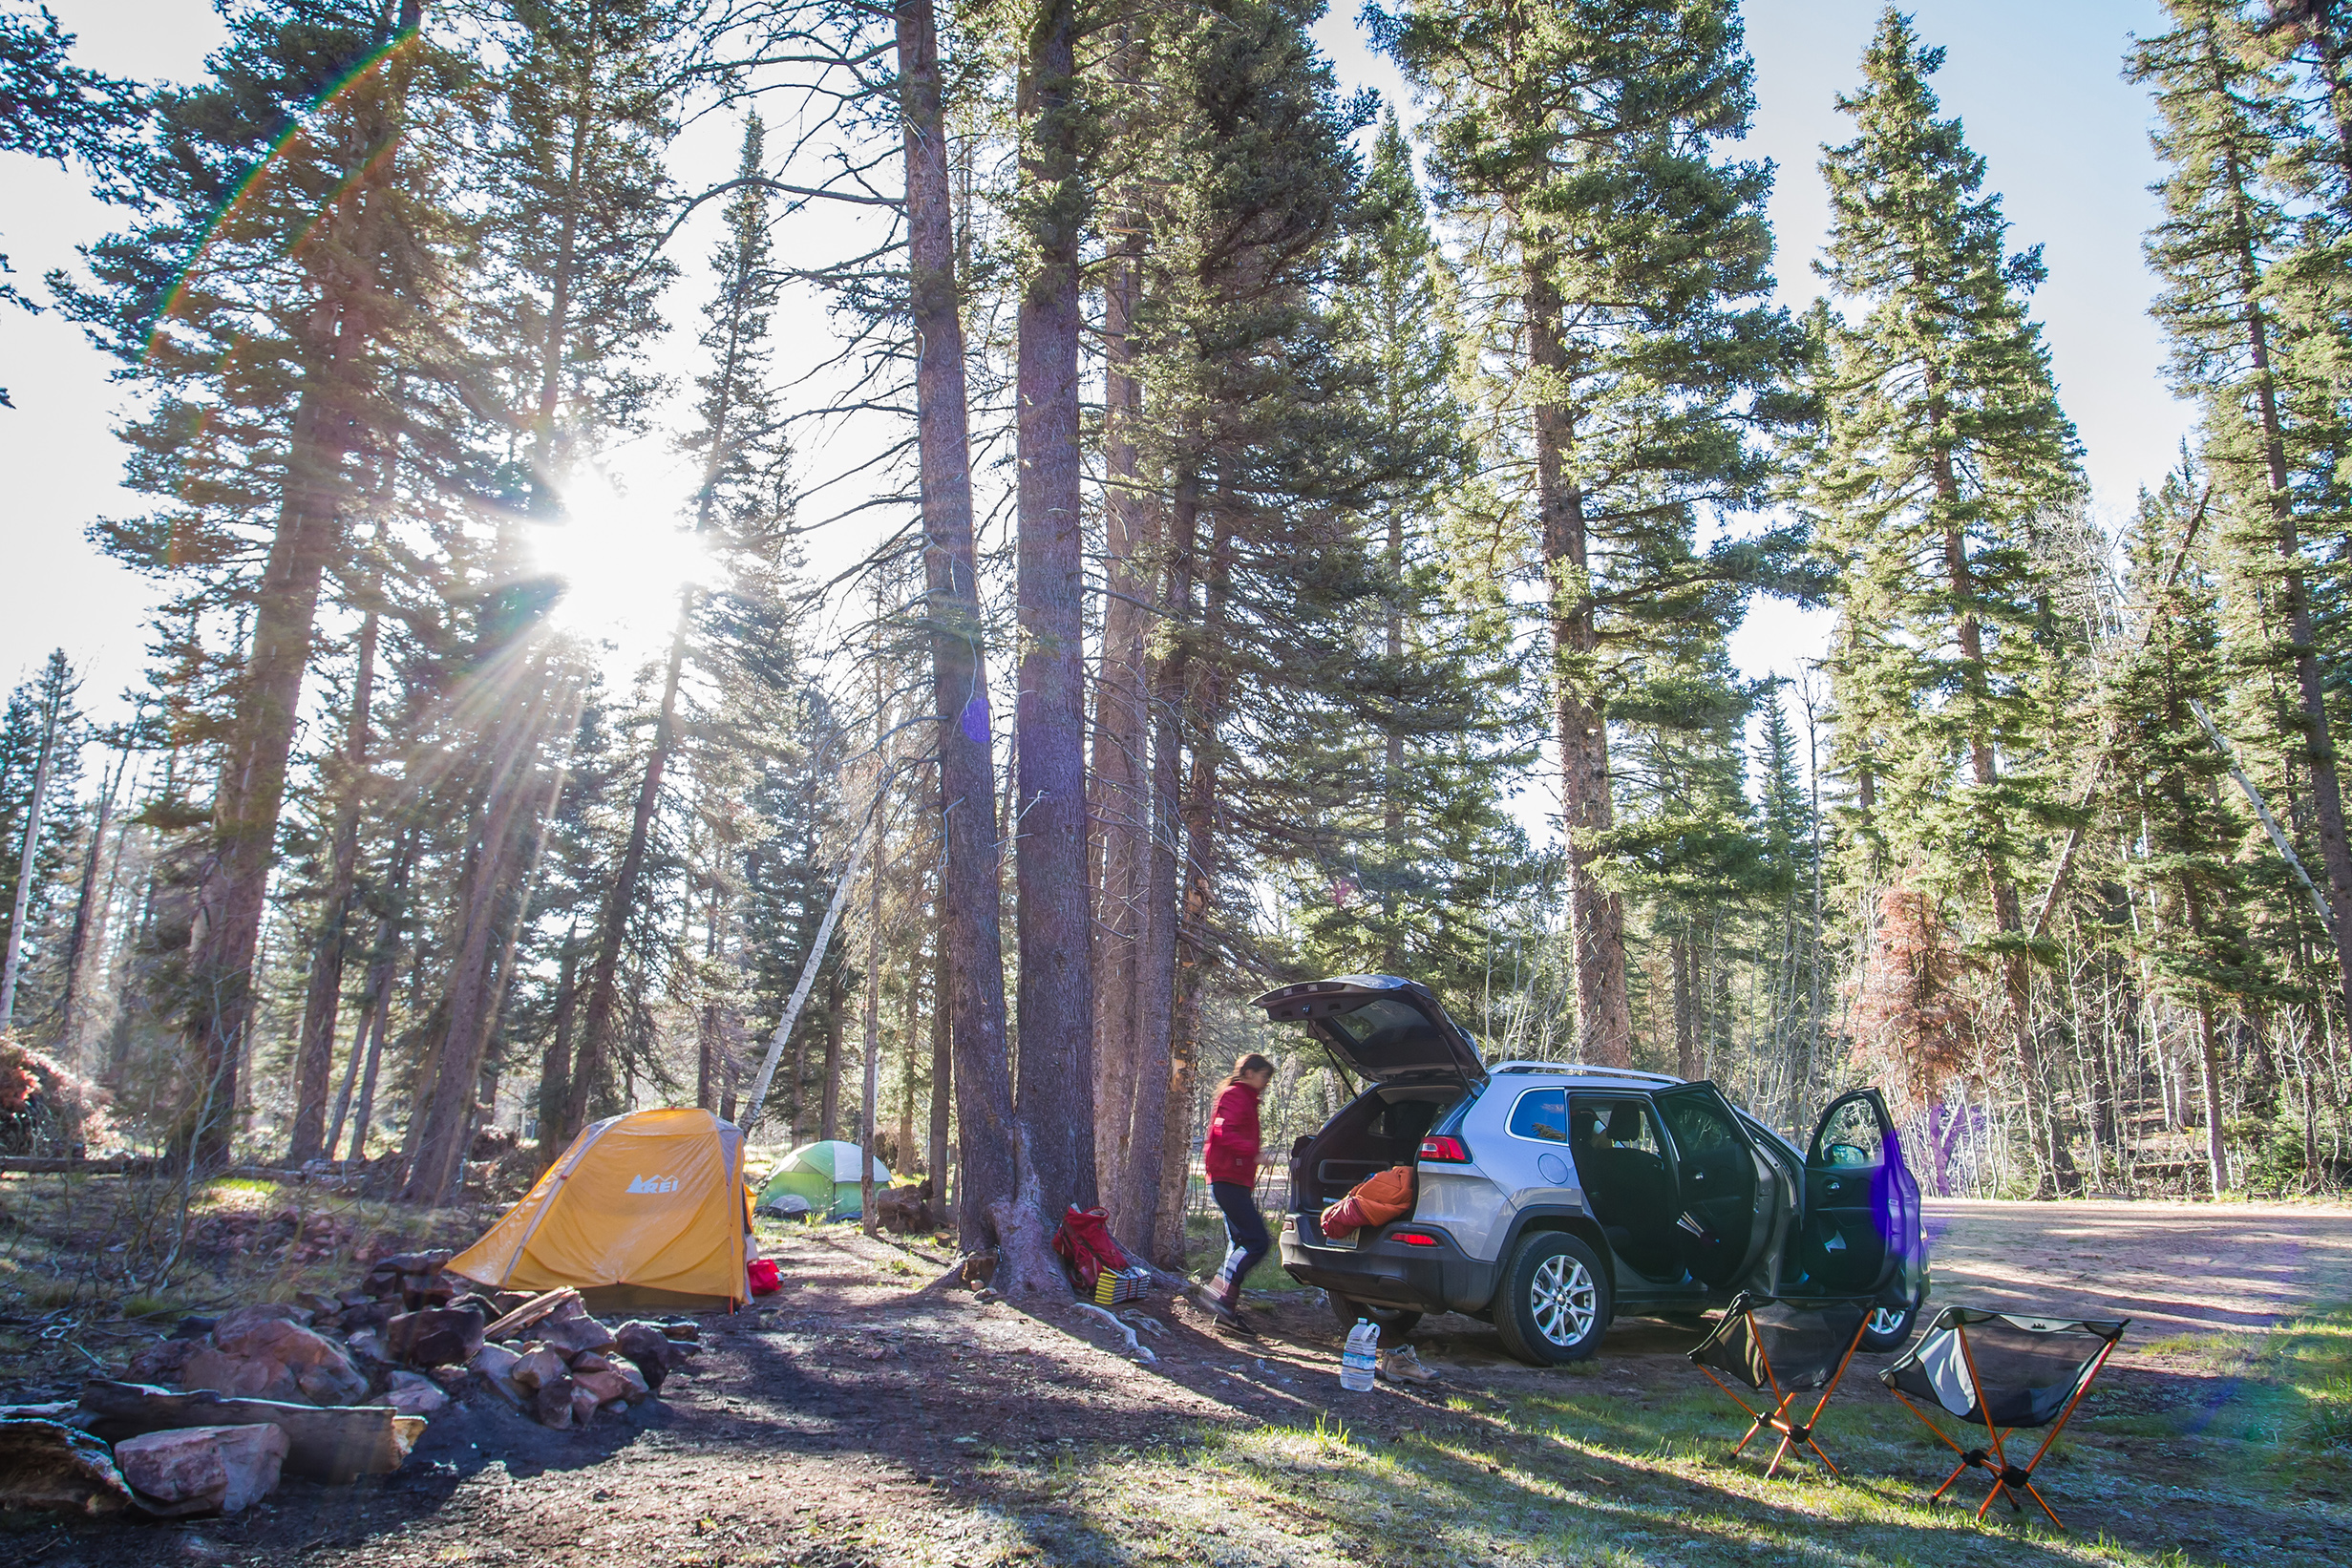 Camping in the woods. Grand Canyon's North Rim